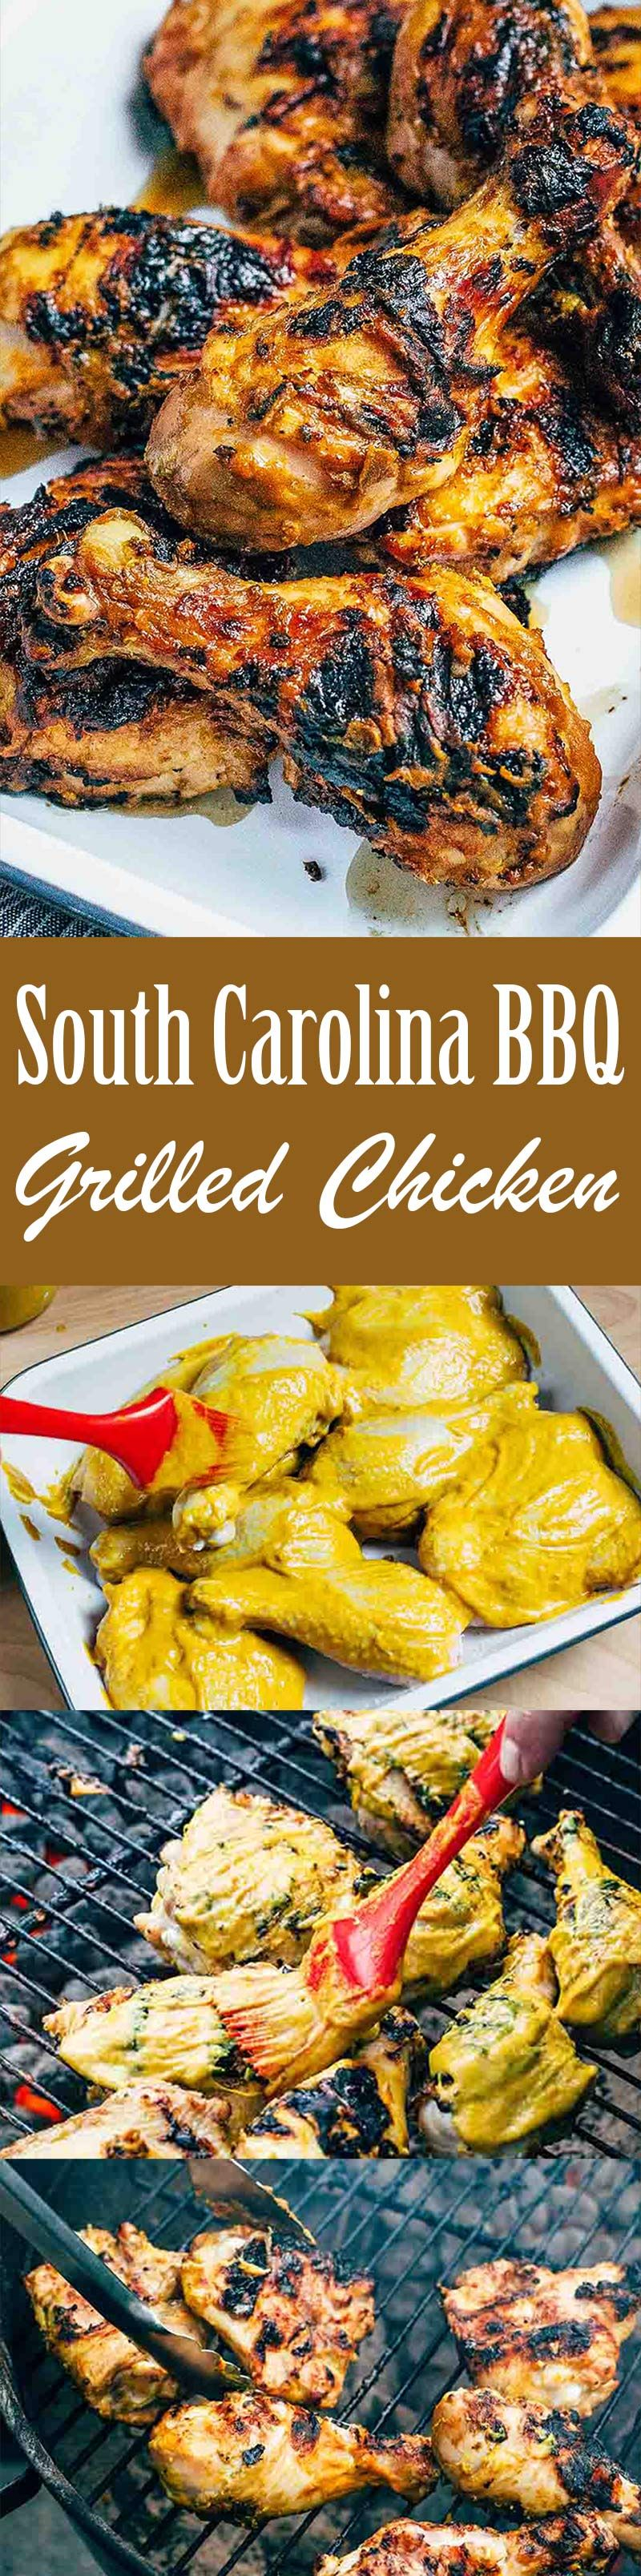 Grilled Chicken With South Carolina Style Bbq Sauce Recipe Simplyrecipes Com Recipe South Carolina Bbq Sauce Grilled Chicken Recipes,Origami For Beginners Easy